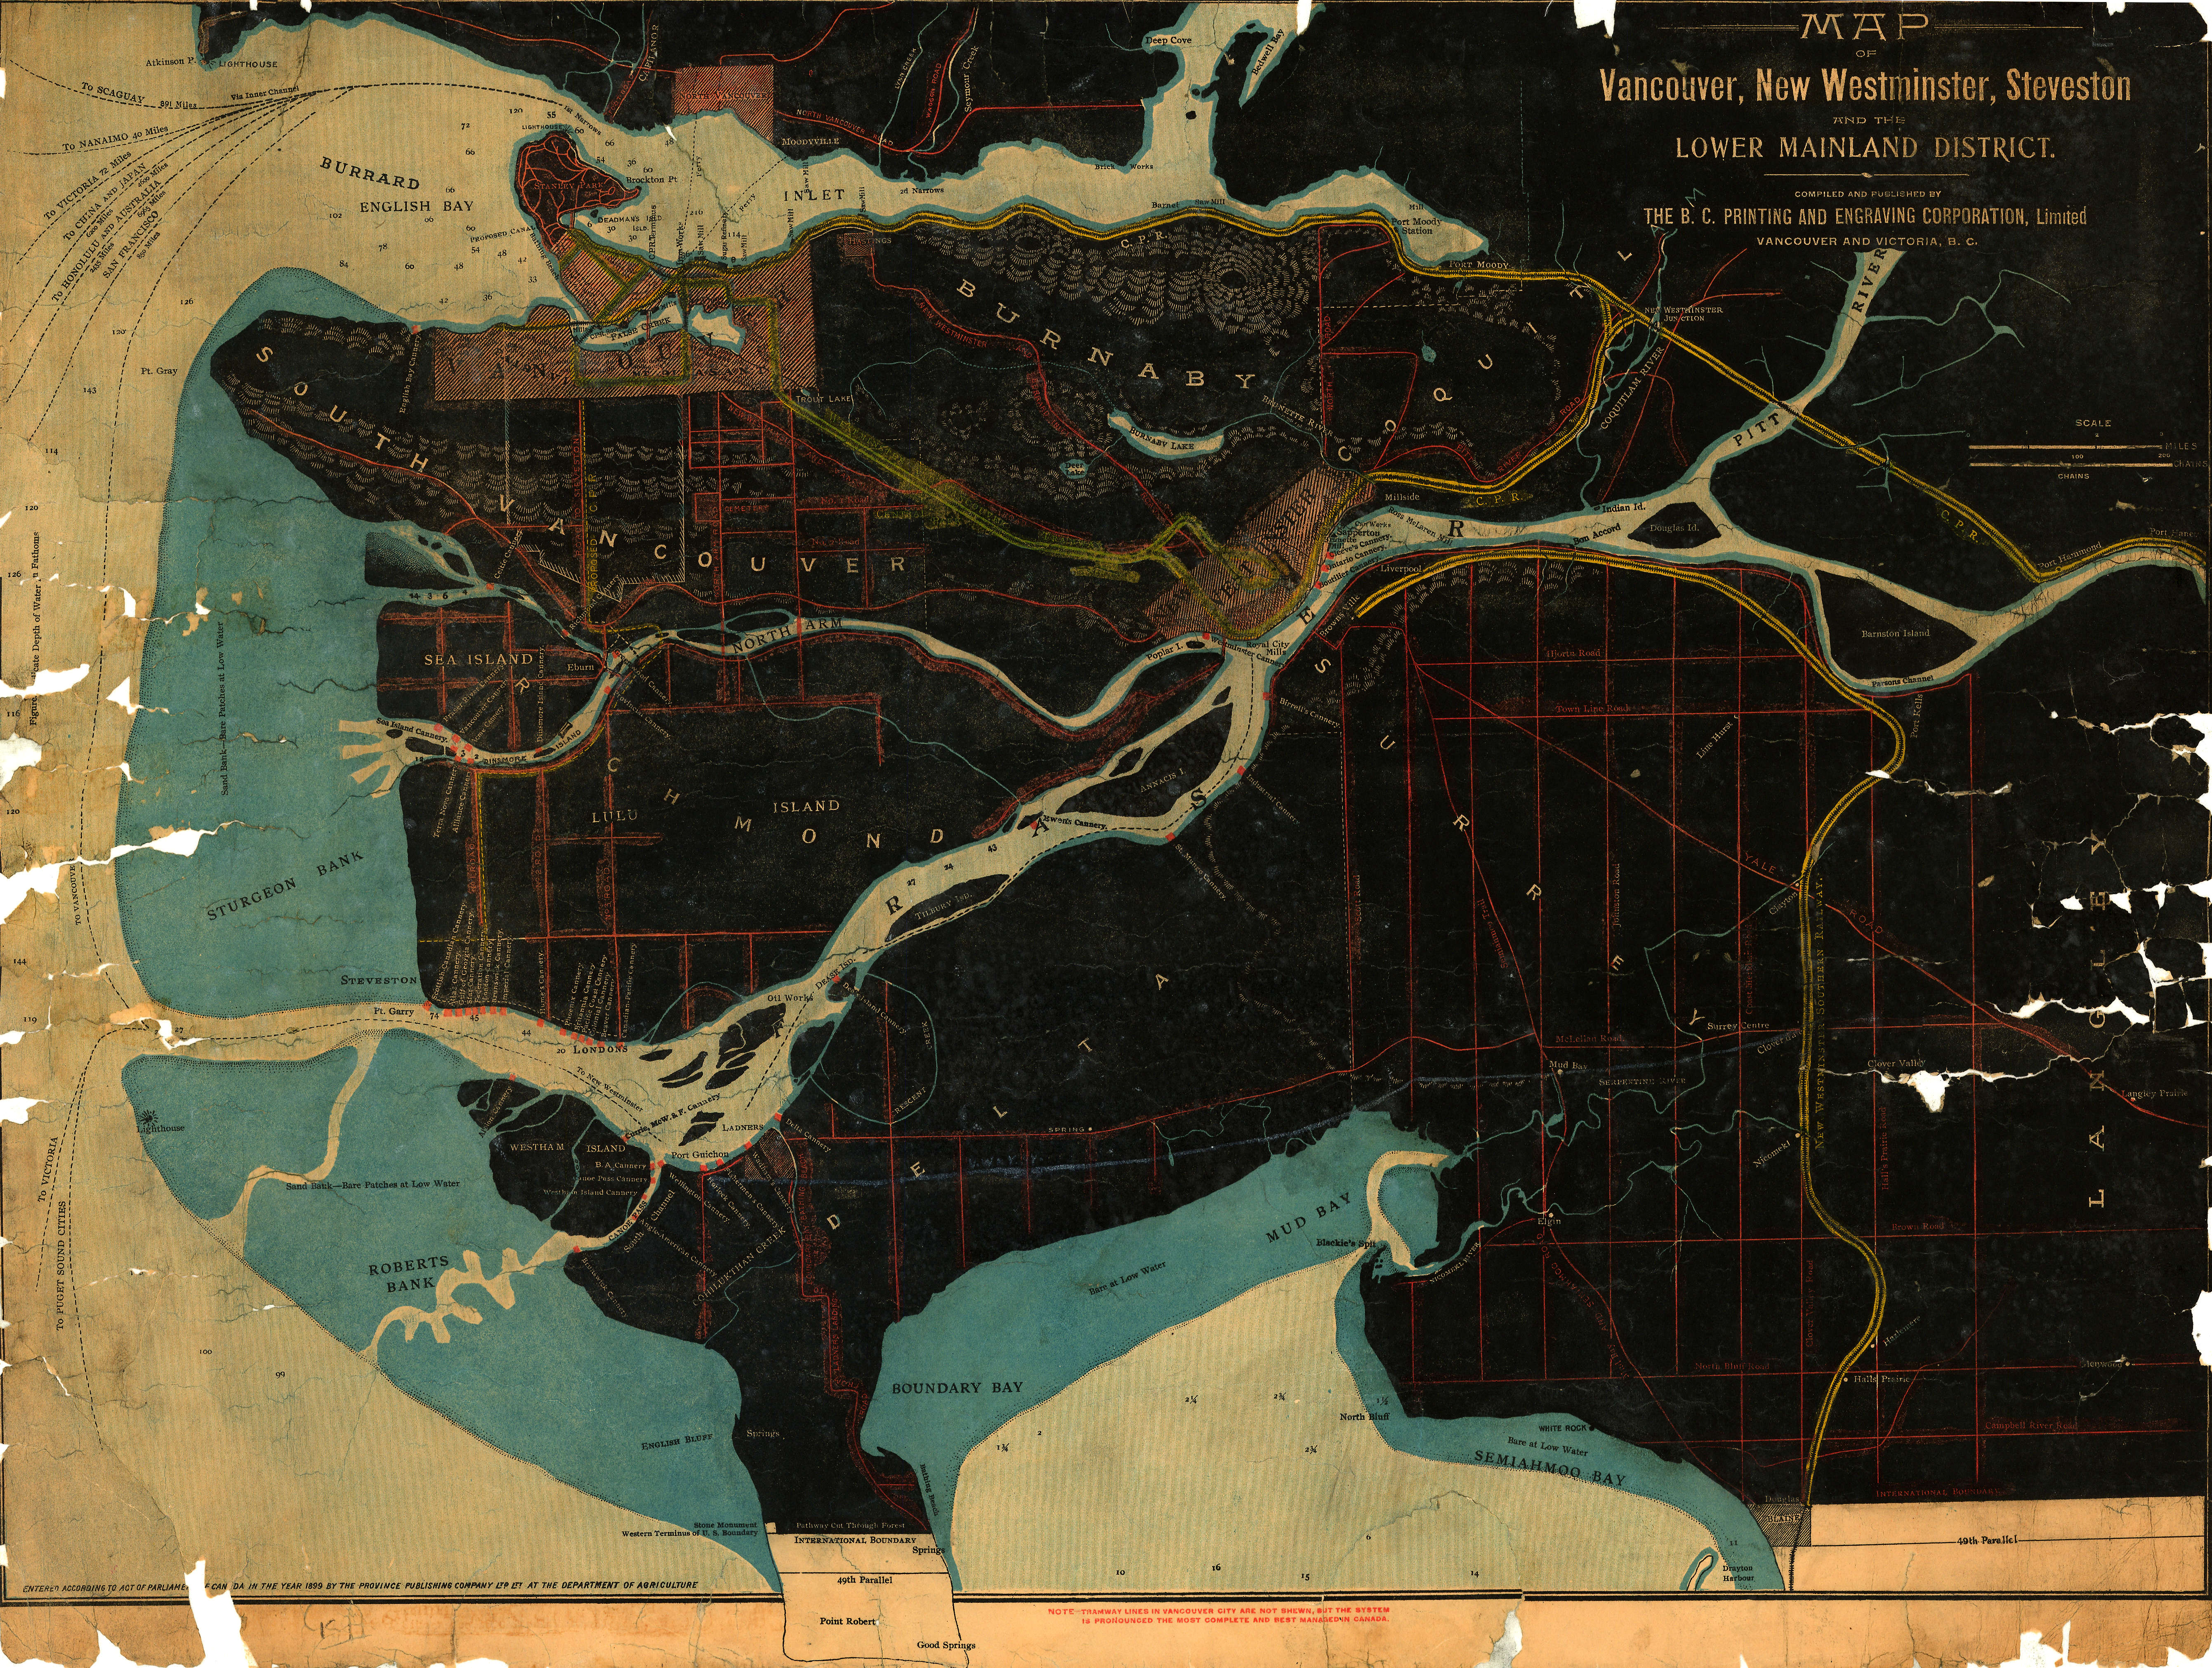 Map of vancouver new westminster steveston and the lower mainland open original digital object gumiabroncs Choice Image